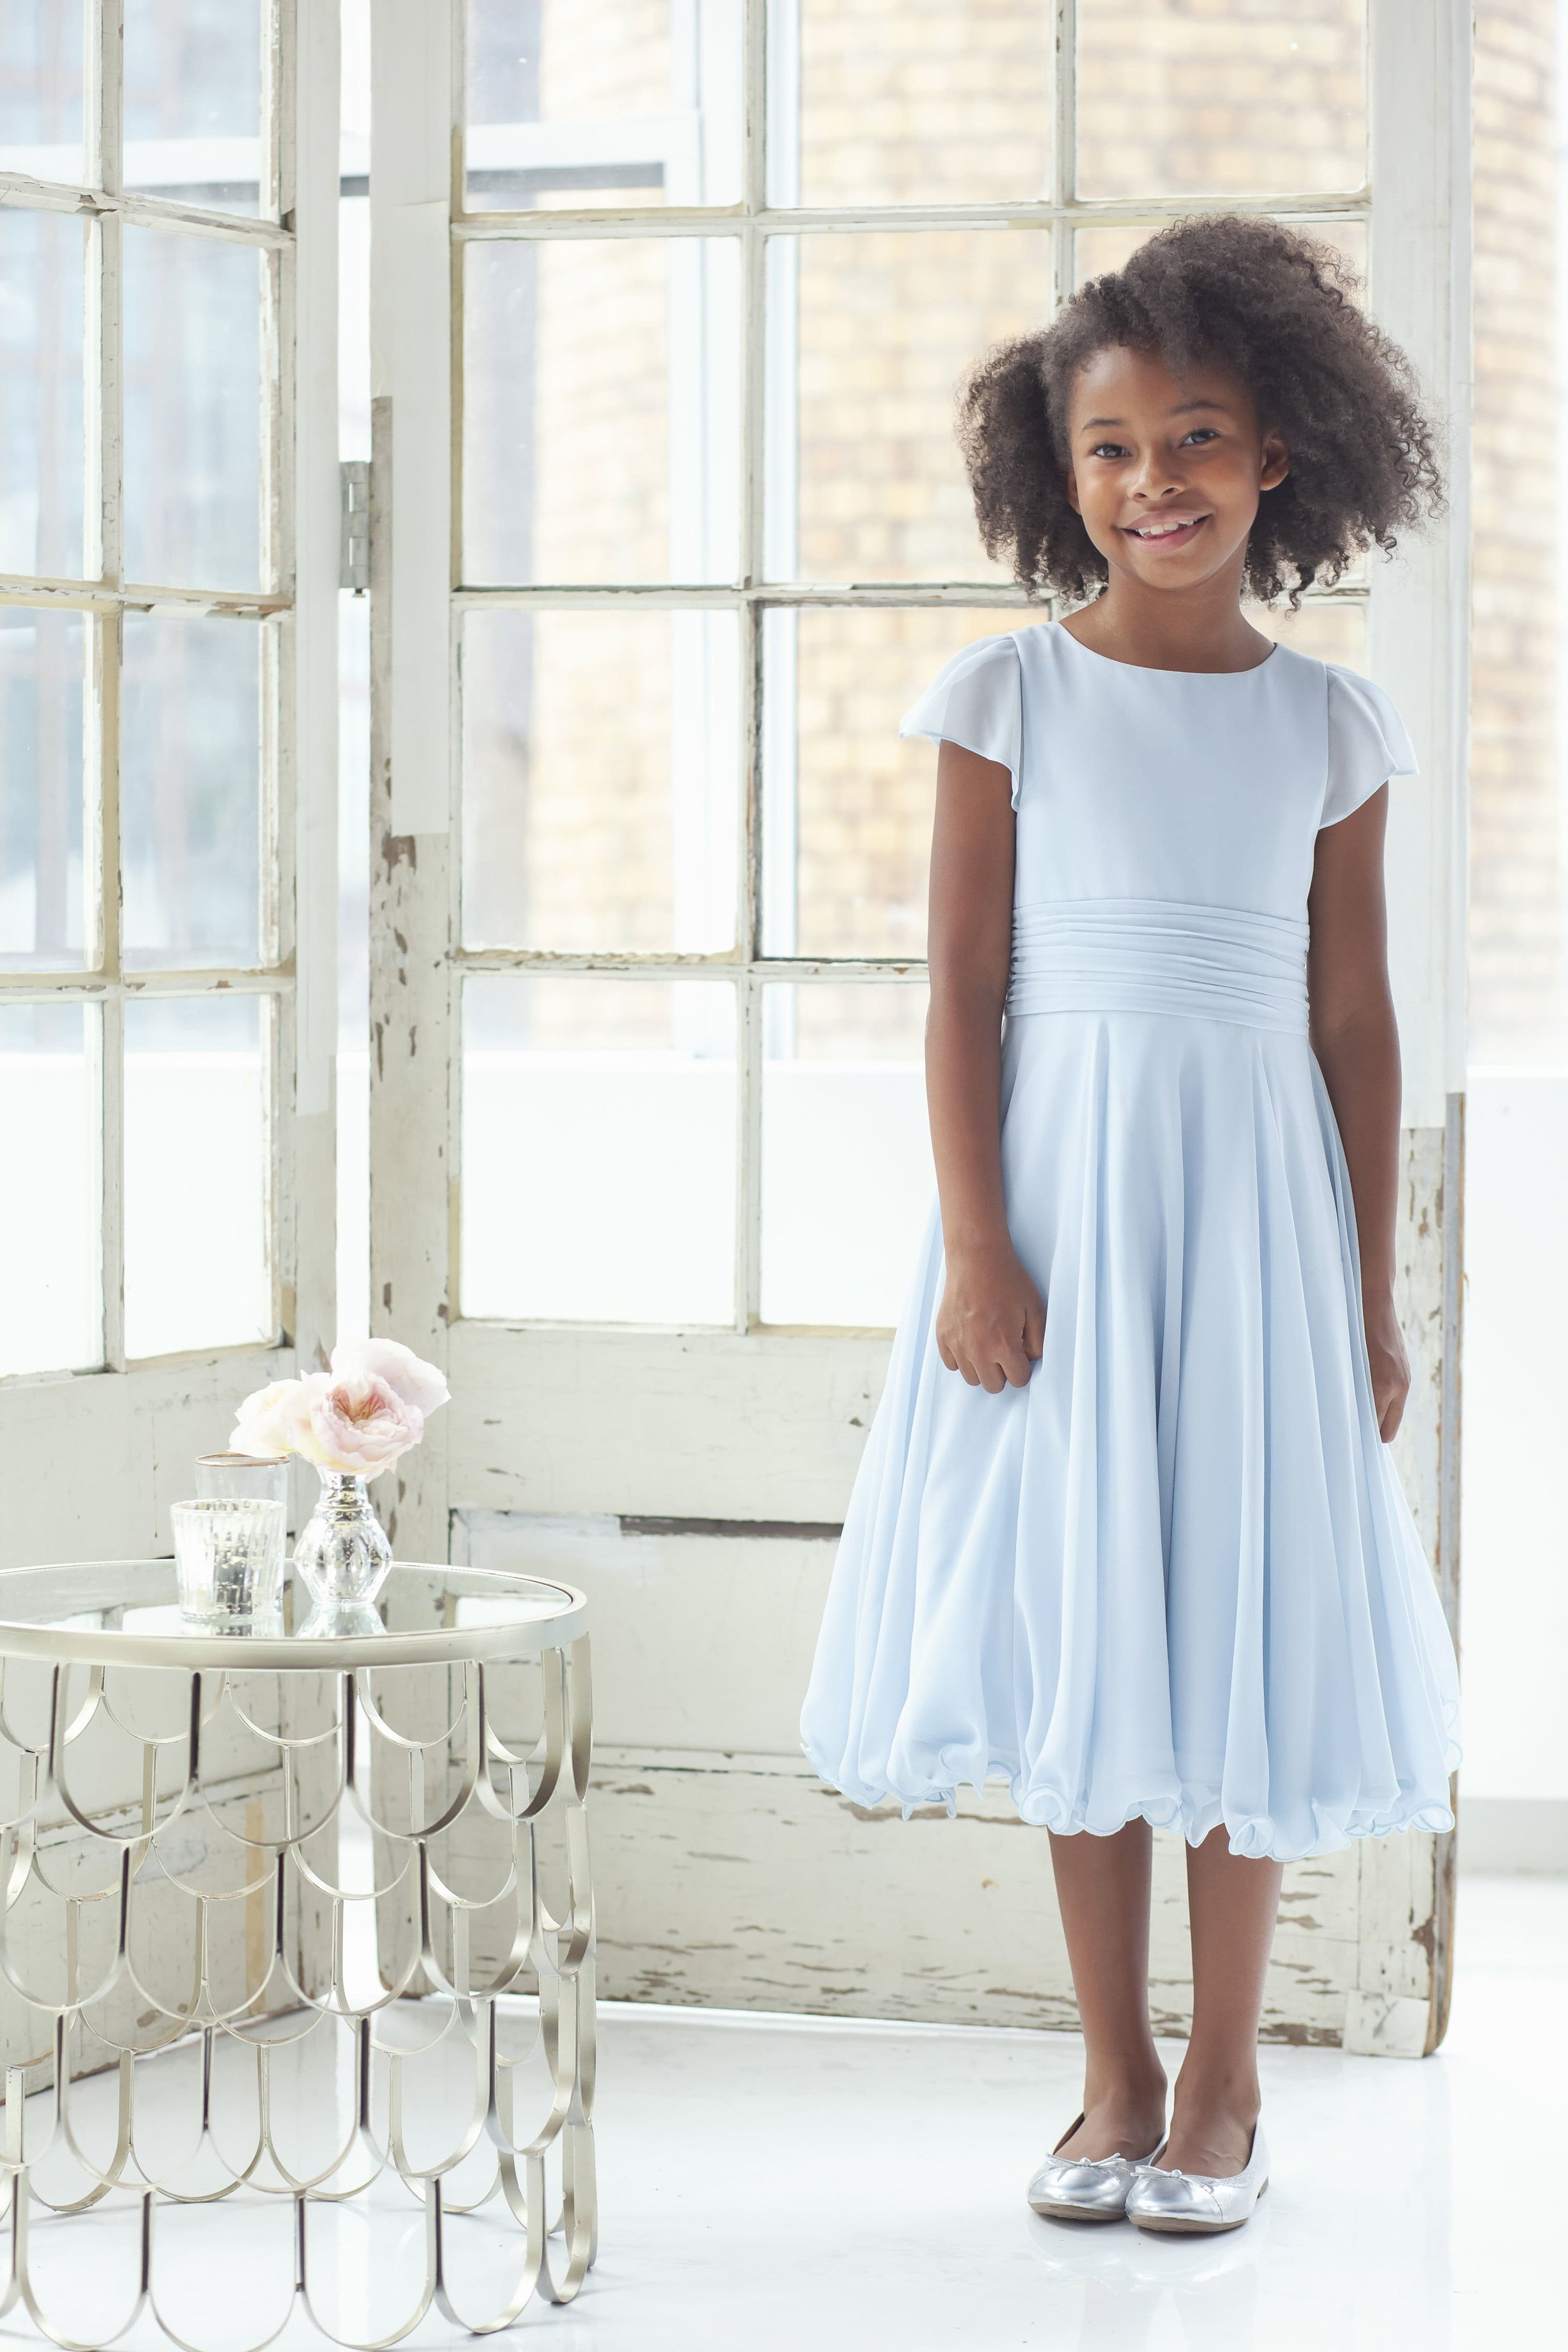 La Petite Hayley Paige Flower Girl style 5927 Piper Oasis chiffon A-line gown, jewel neckline, rushed waistband, flutter sleeve and wire hem